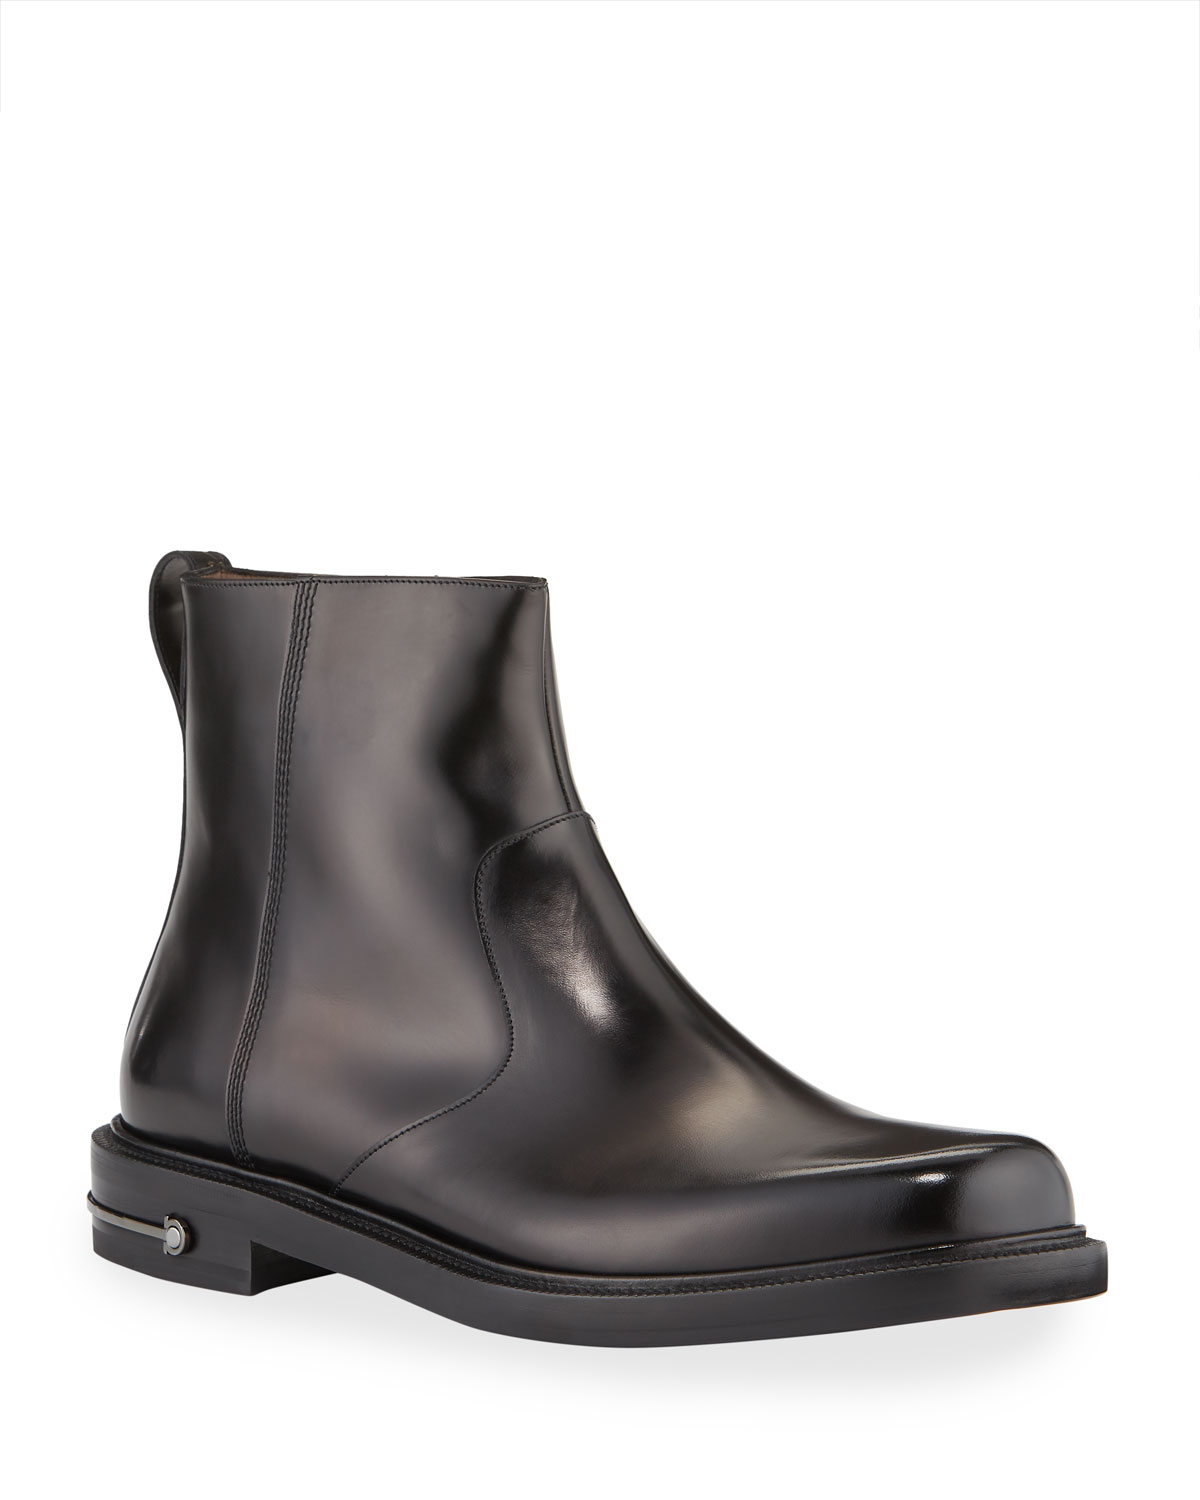 Men's Sefton Gancini Leather Side-Zip Ankle Boots